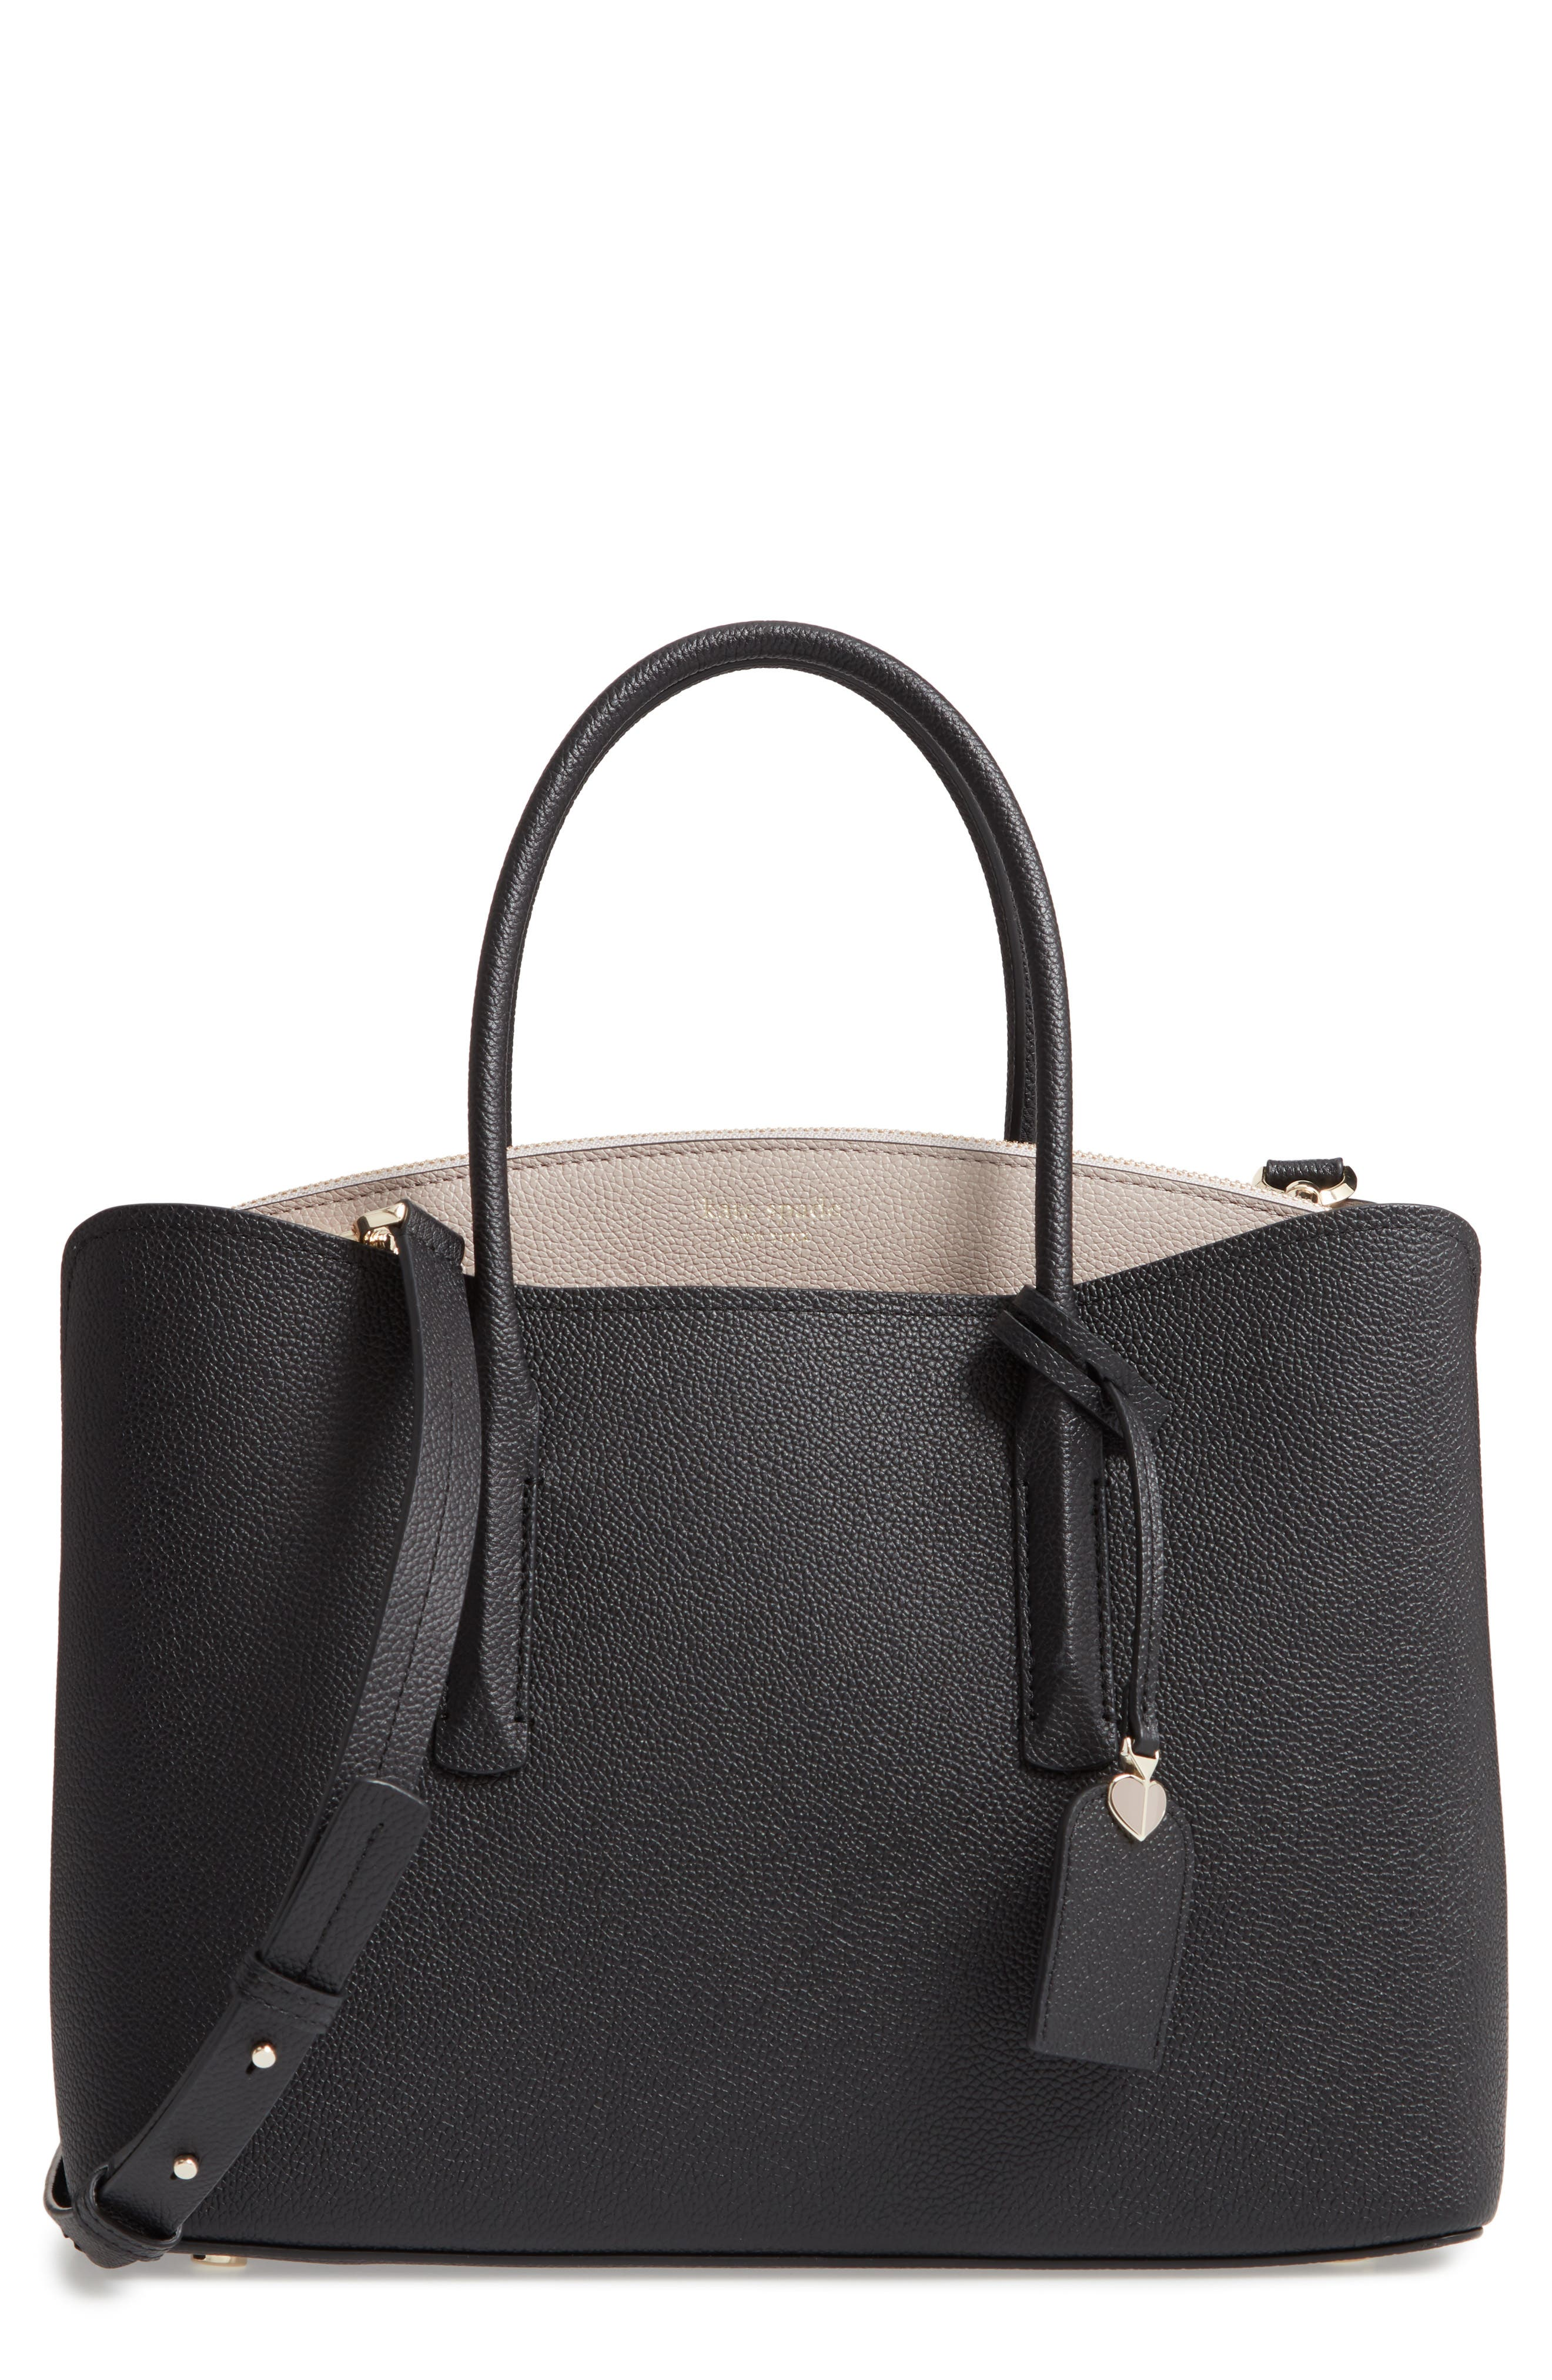 KATE SPADE NEW YORK, large margaux leather satchel, Main thumbnail 1, color, BLACK/ WARM TAUPE